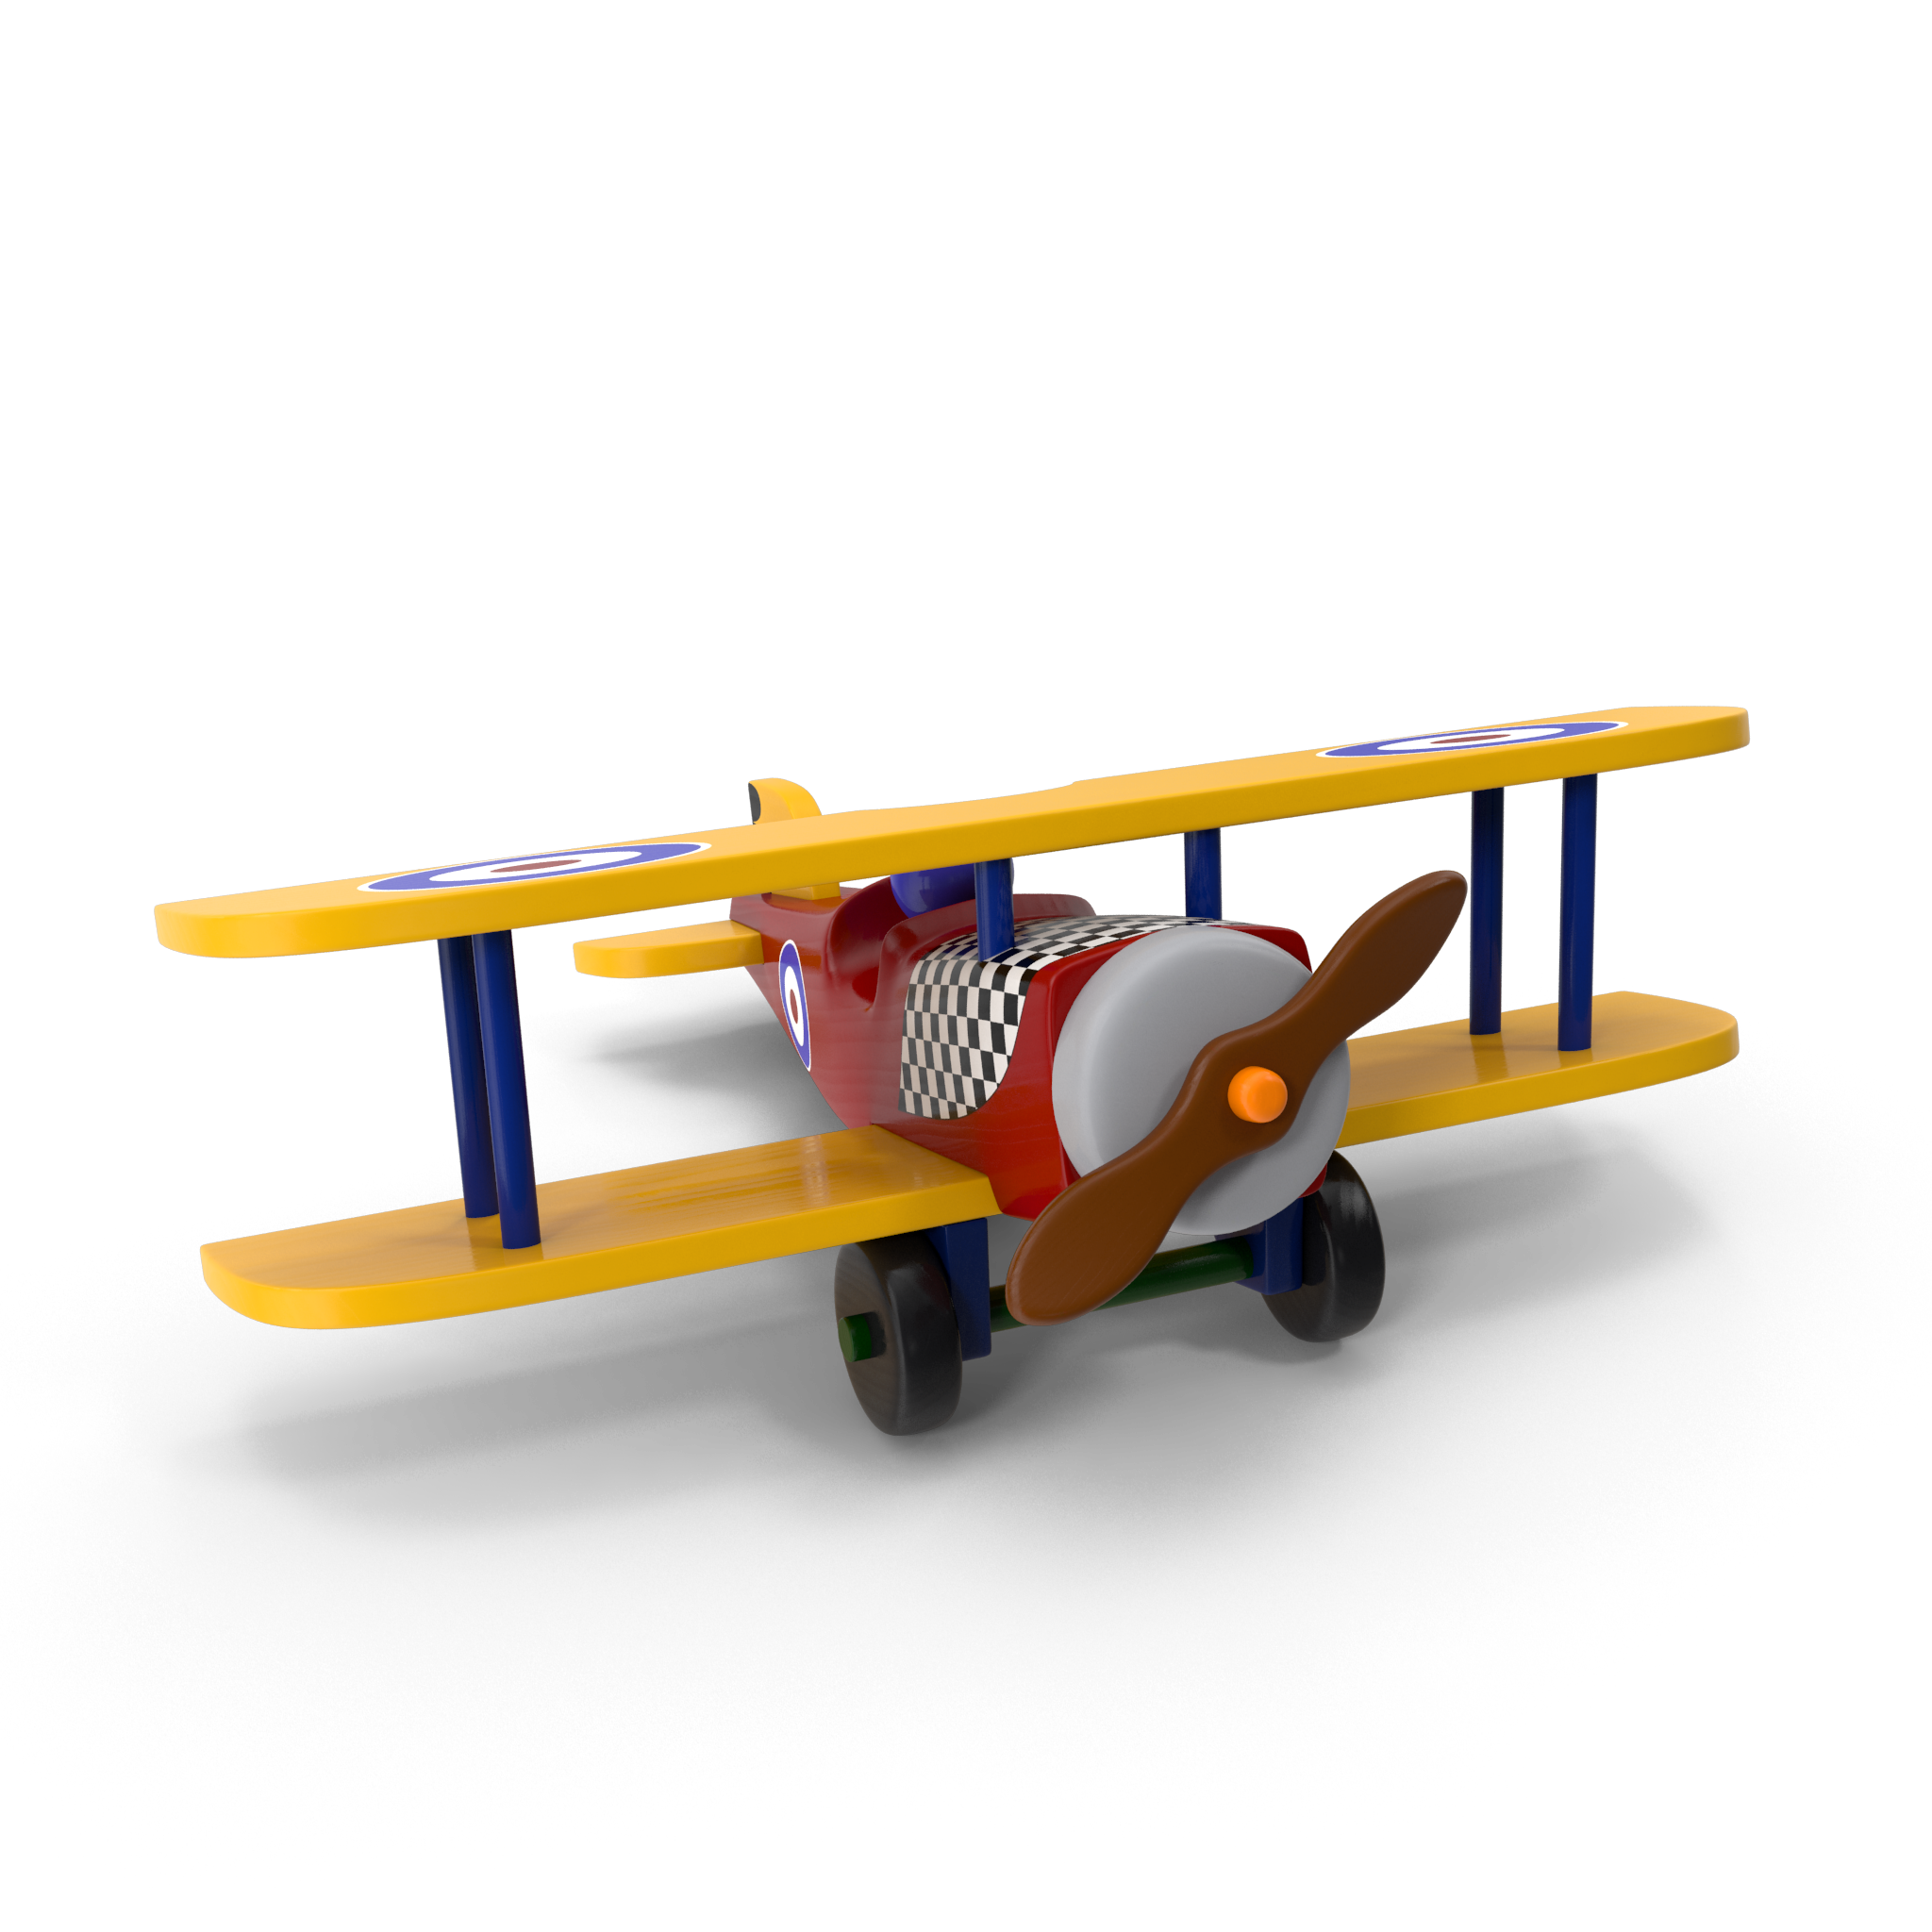 WoodenAirplane.G16.2k